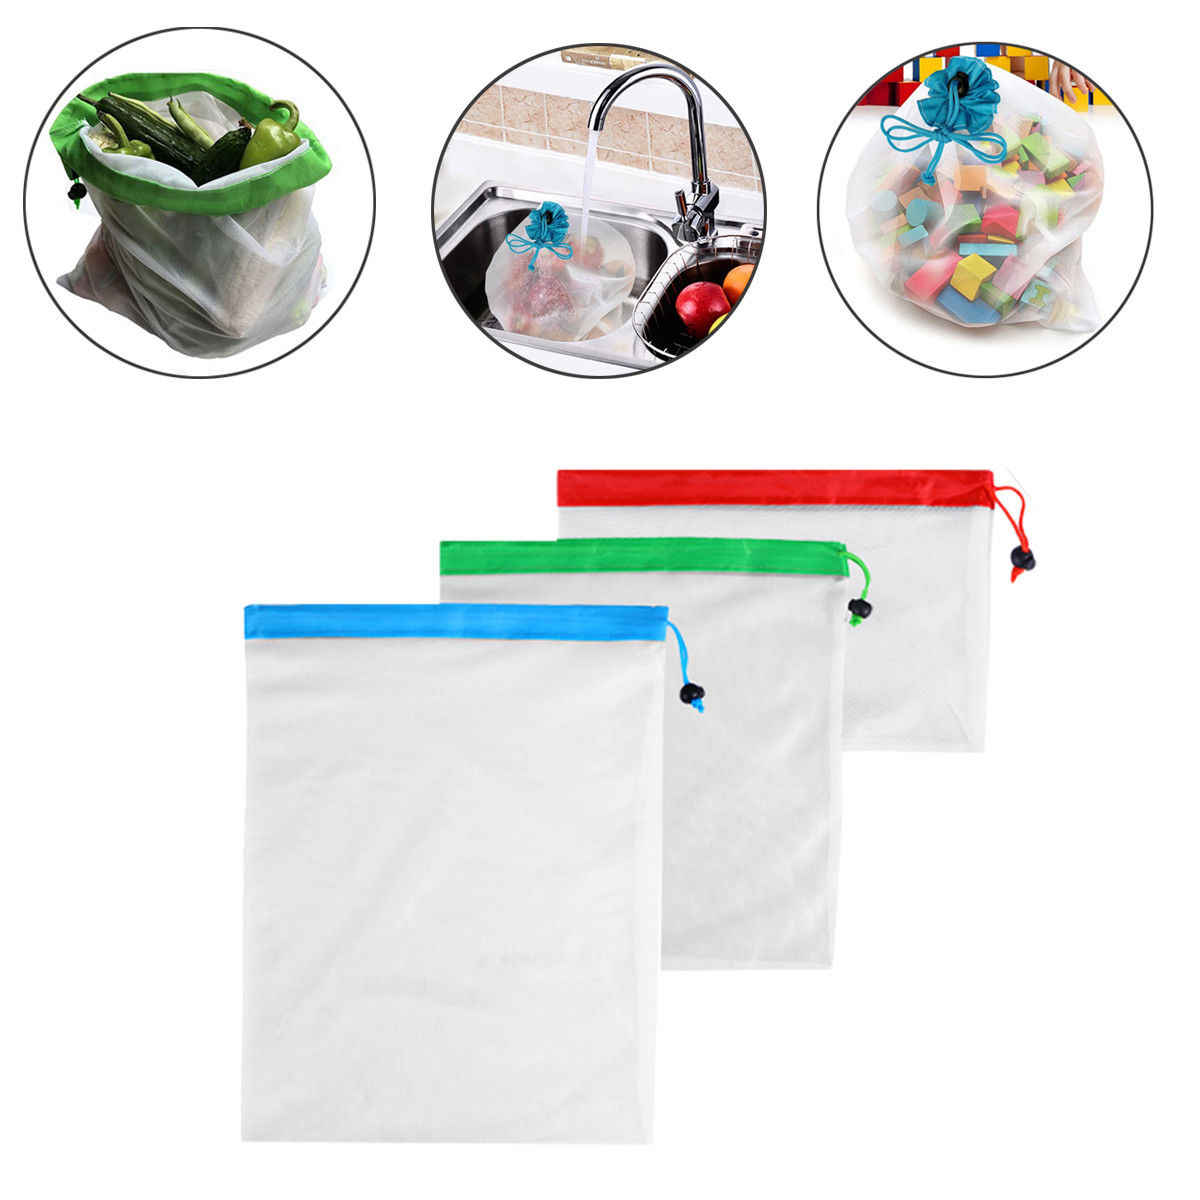 3 Size Reusable Mesh Produce Bags Washable Bags for Grocery Shopping Storage Fruit Vegetable Toys Sundries Organizer Storage Bag